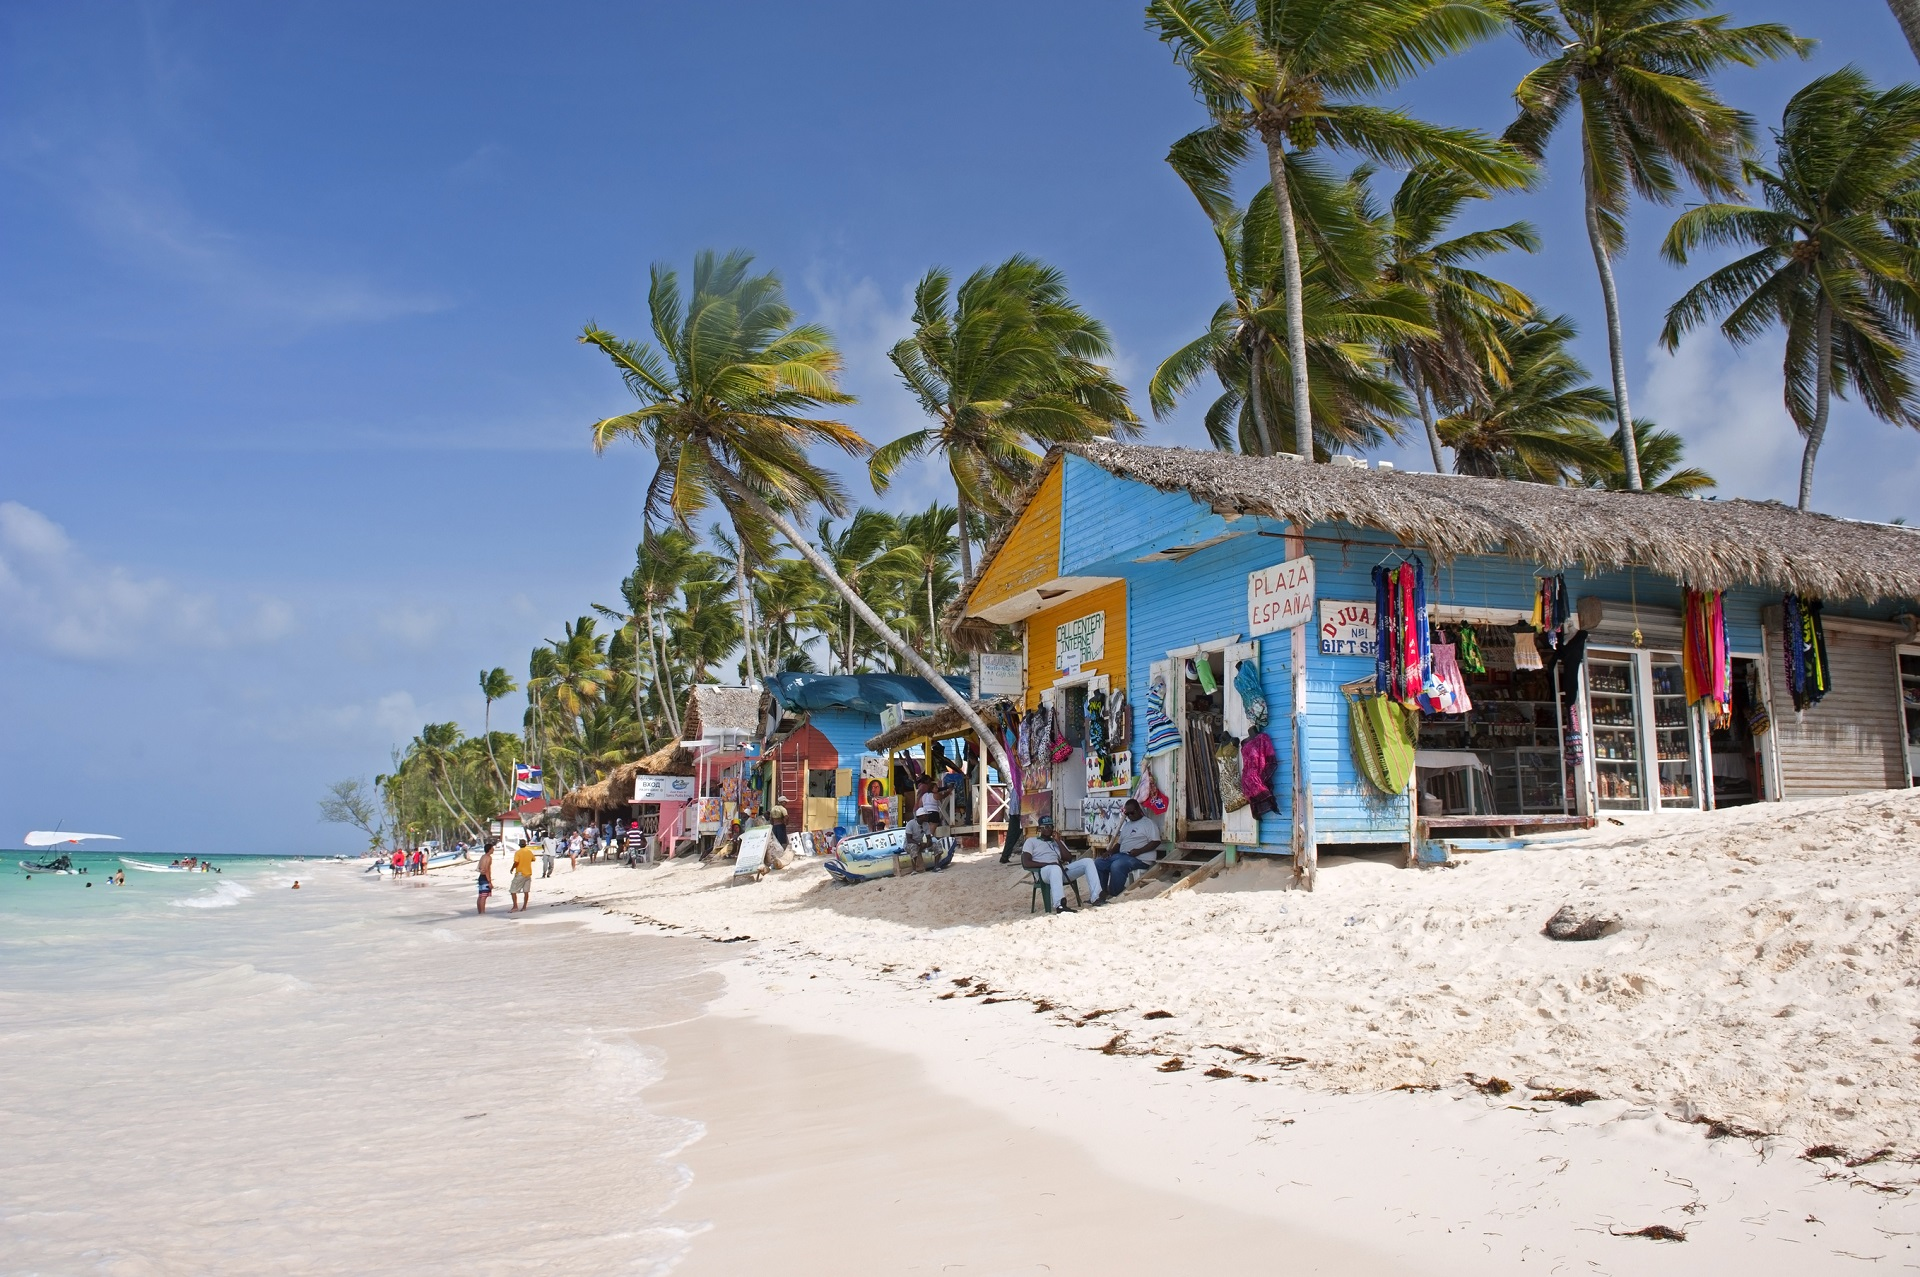 Punta Cana, Dominican Republic- July 20, 2013: Tourist walking on the beach and take a tour of the bungalows-stalls with souvenirs. Locals sitting in front of stalls